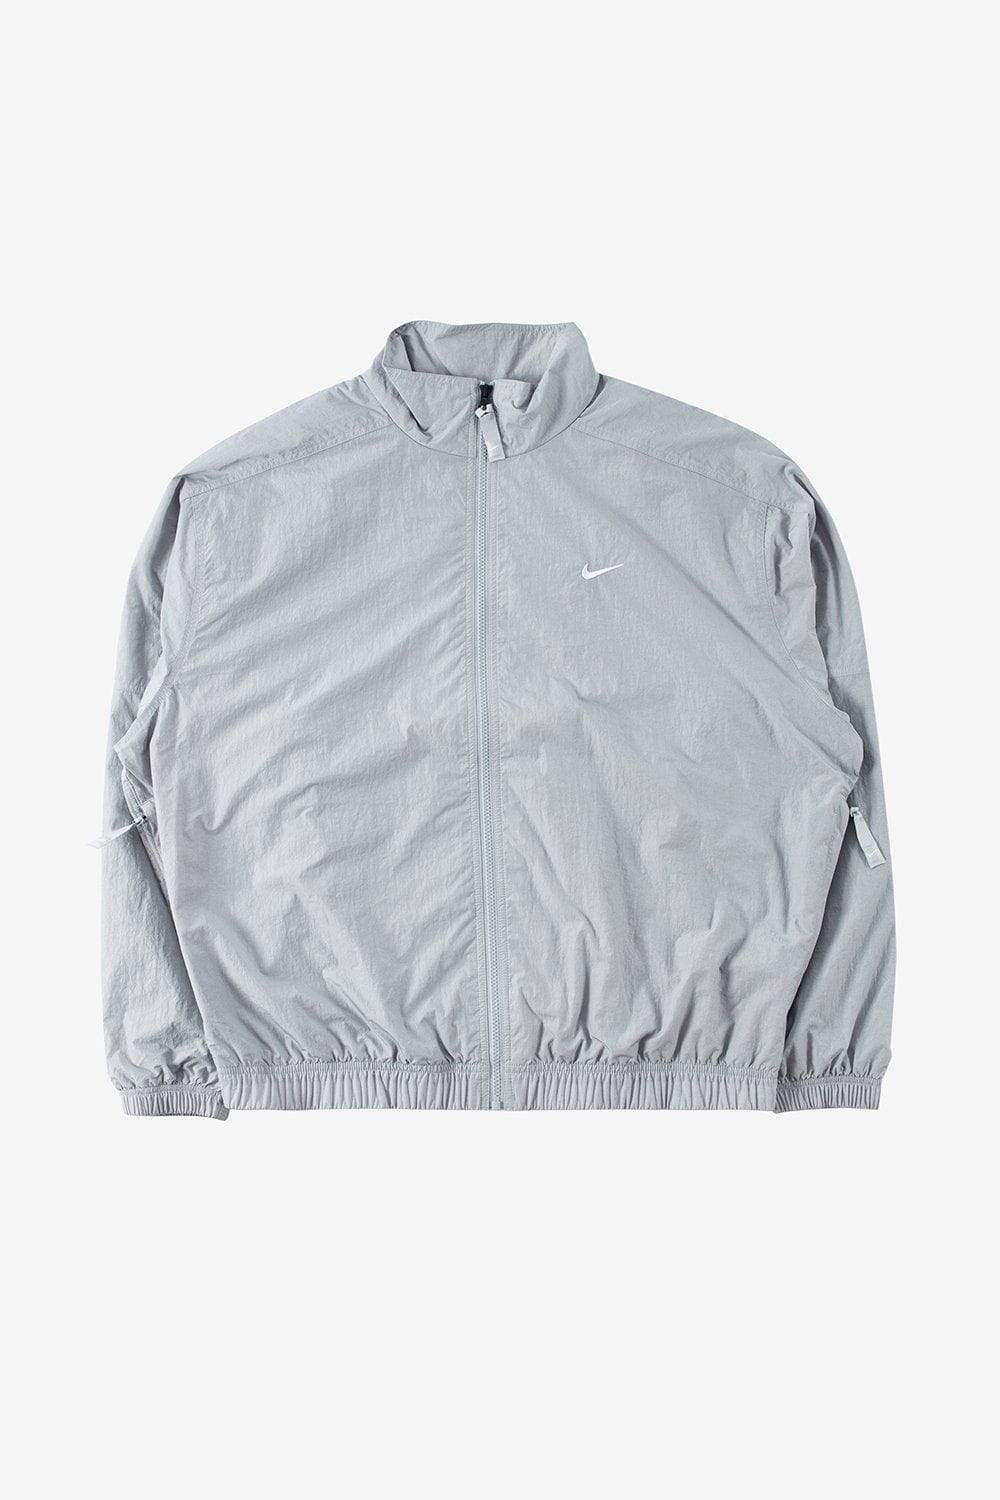 Nike Apparel NikeLab Track Jacket